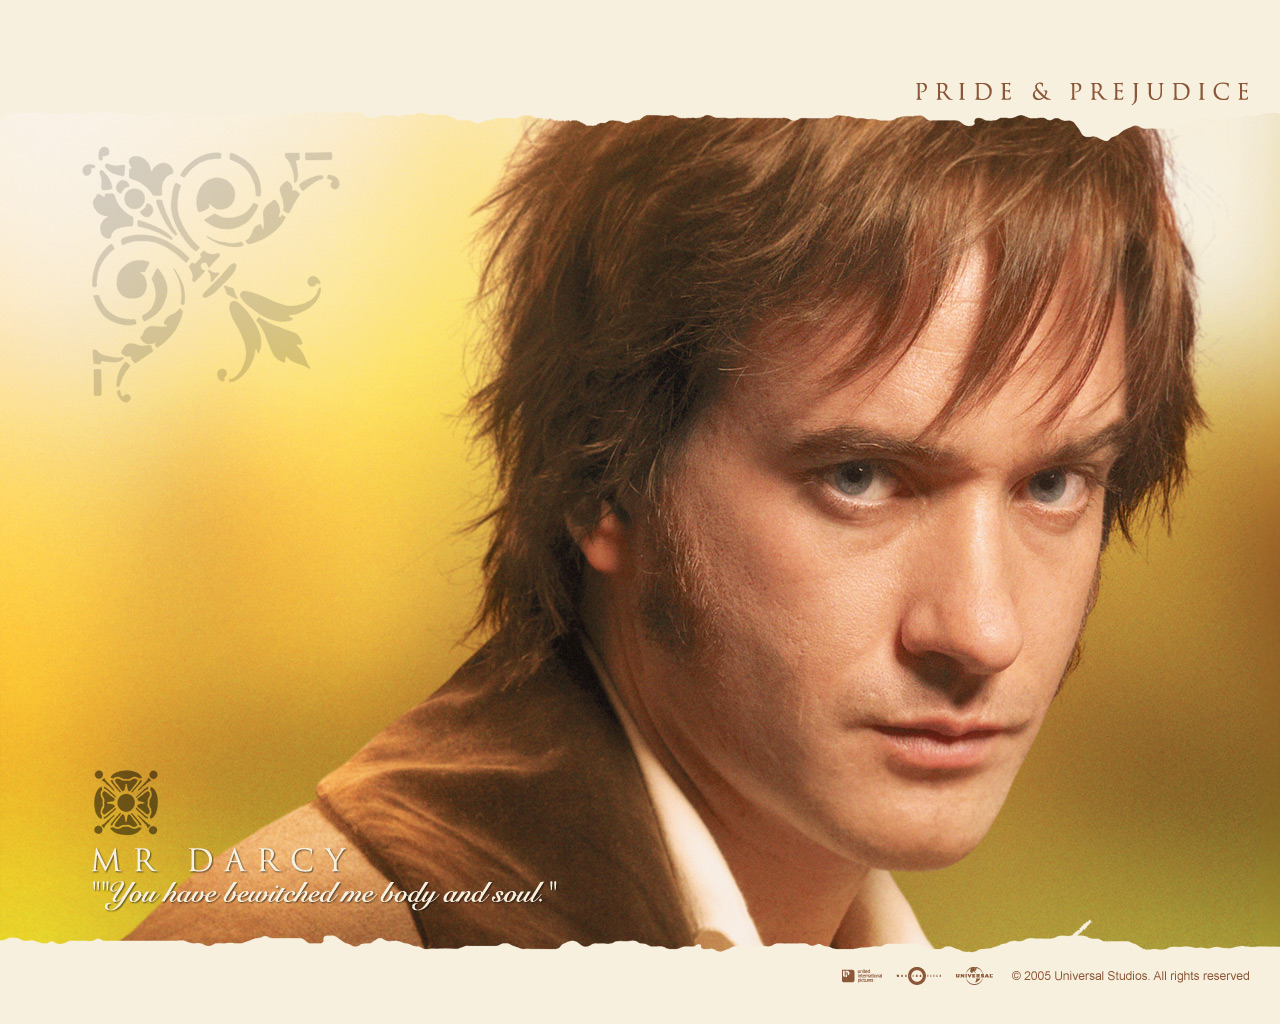 Mr Darcy - Mr. Darcy Wallpaper (697525) - Fanpop